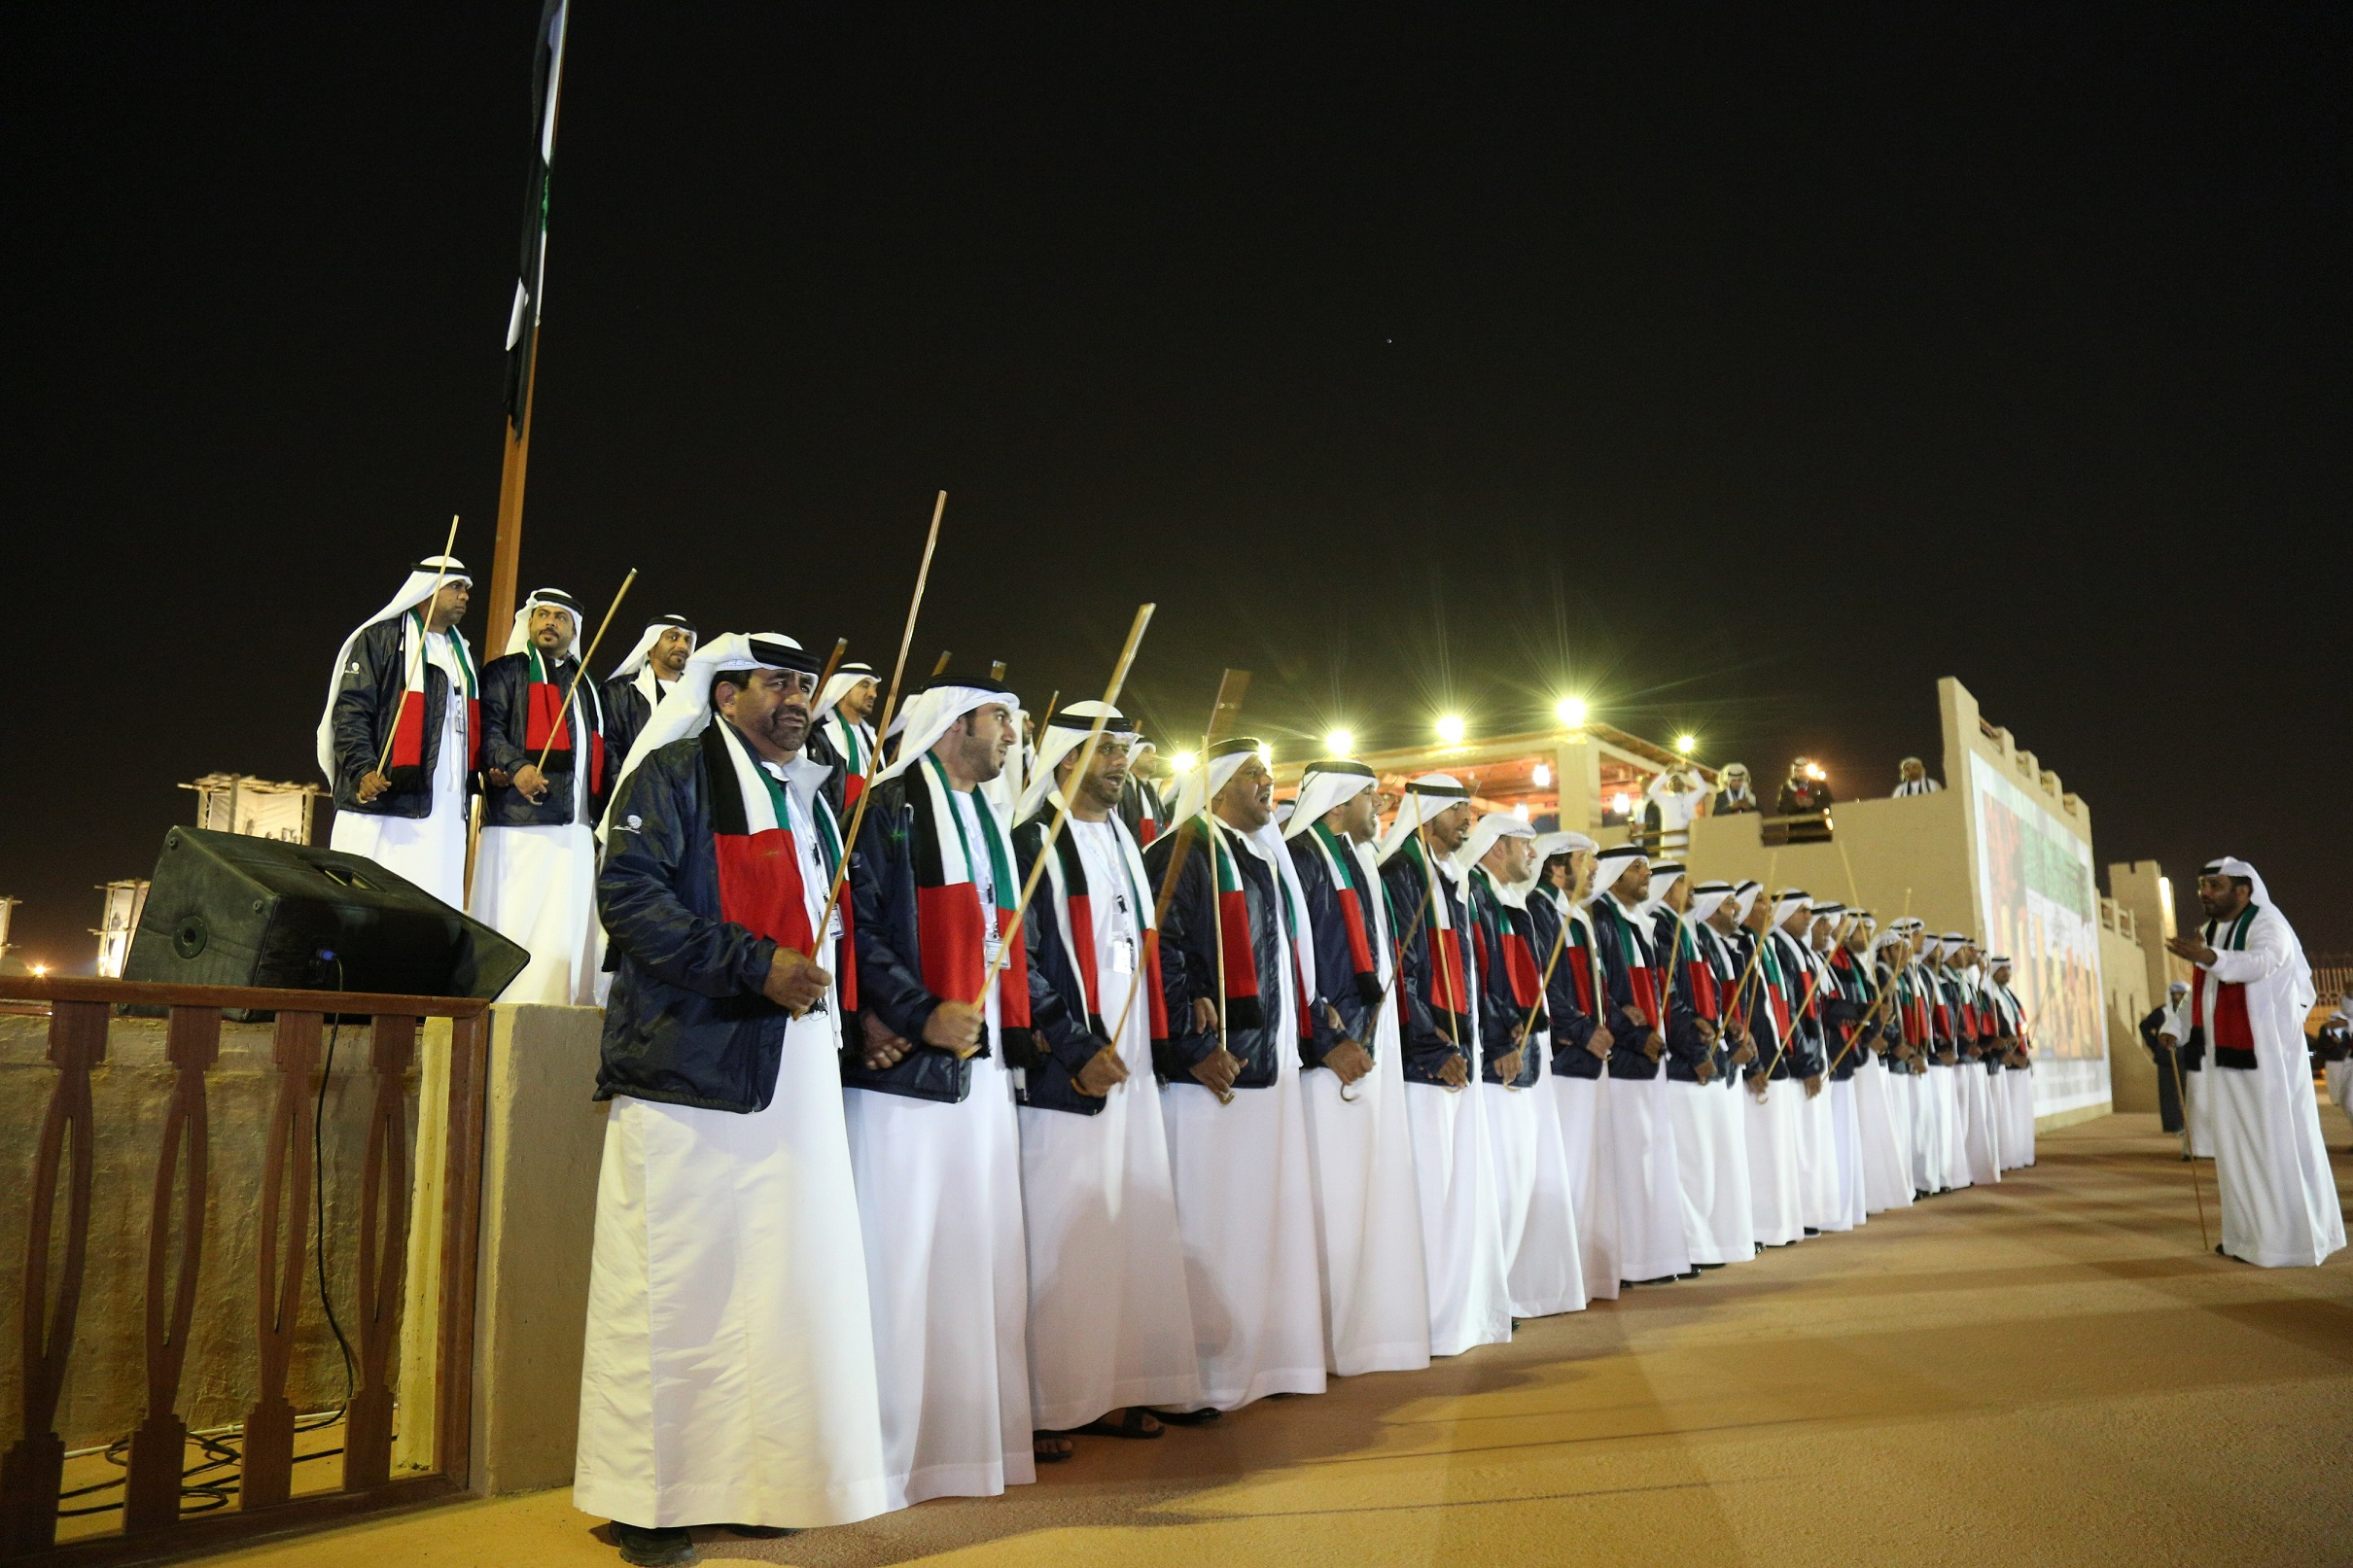 uae pavilion continues activities at 32nd al janadriyah festival2